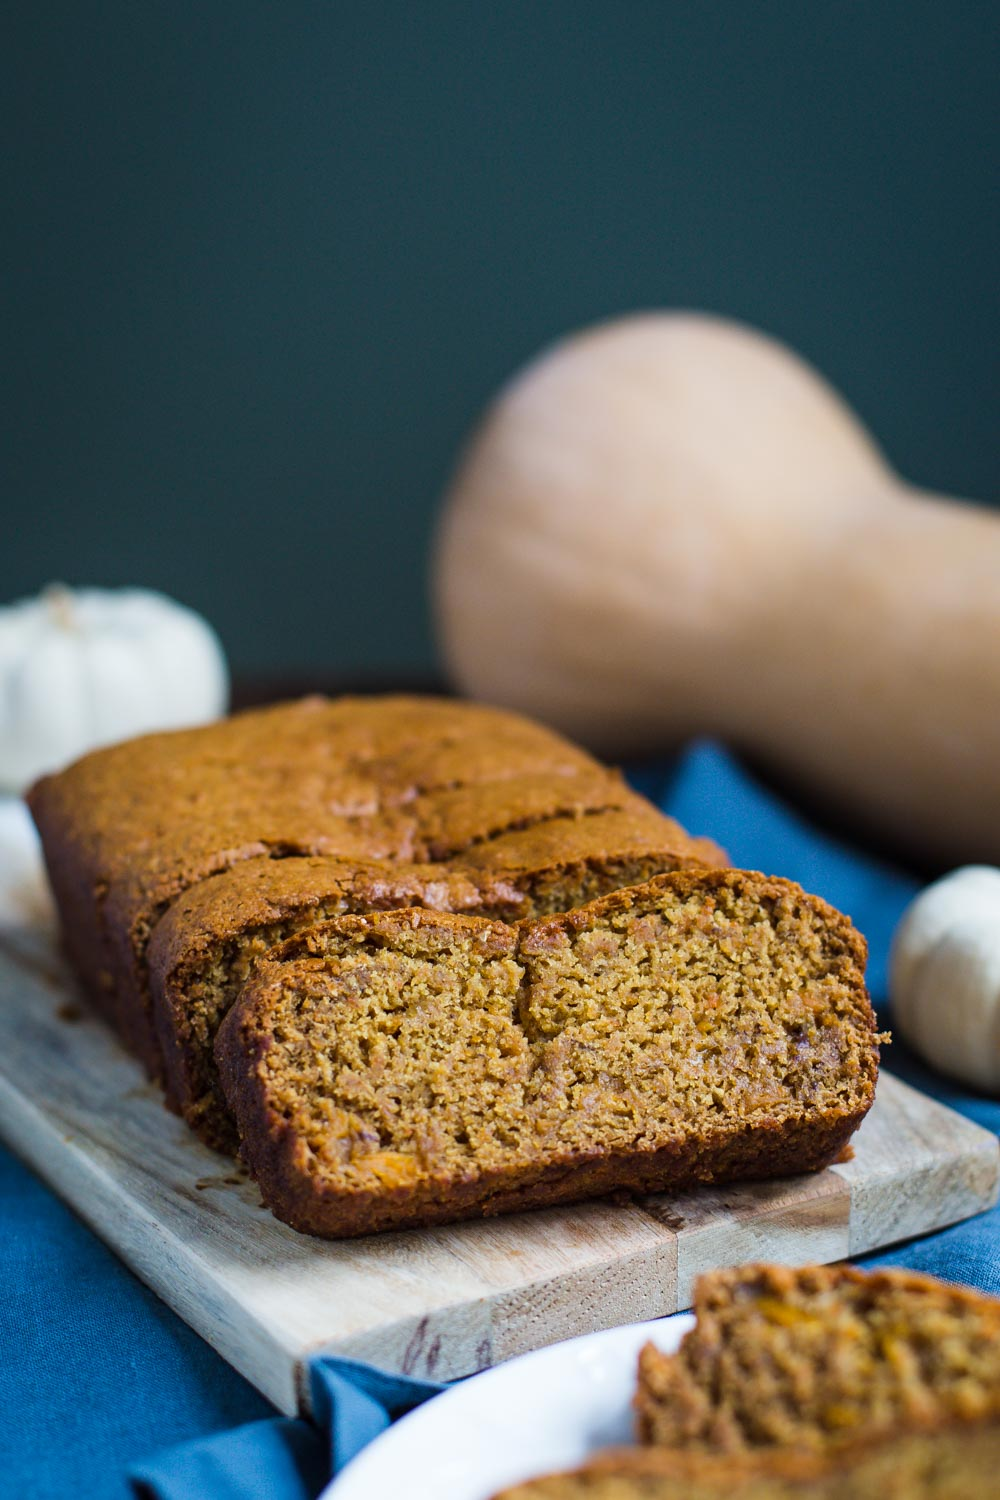 Butternut Squash Bread- this simple autumnal bread is just like pumpkin bread but with butternut squash puree instead. It's also FULLY vegan!